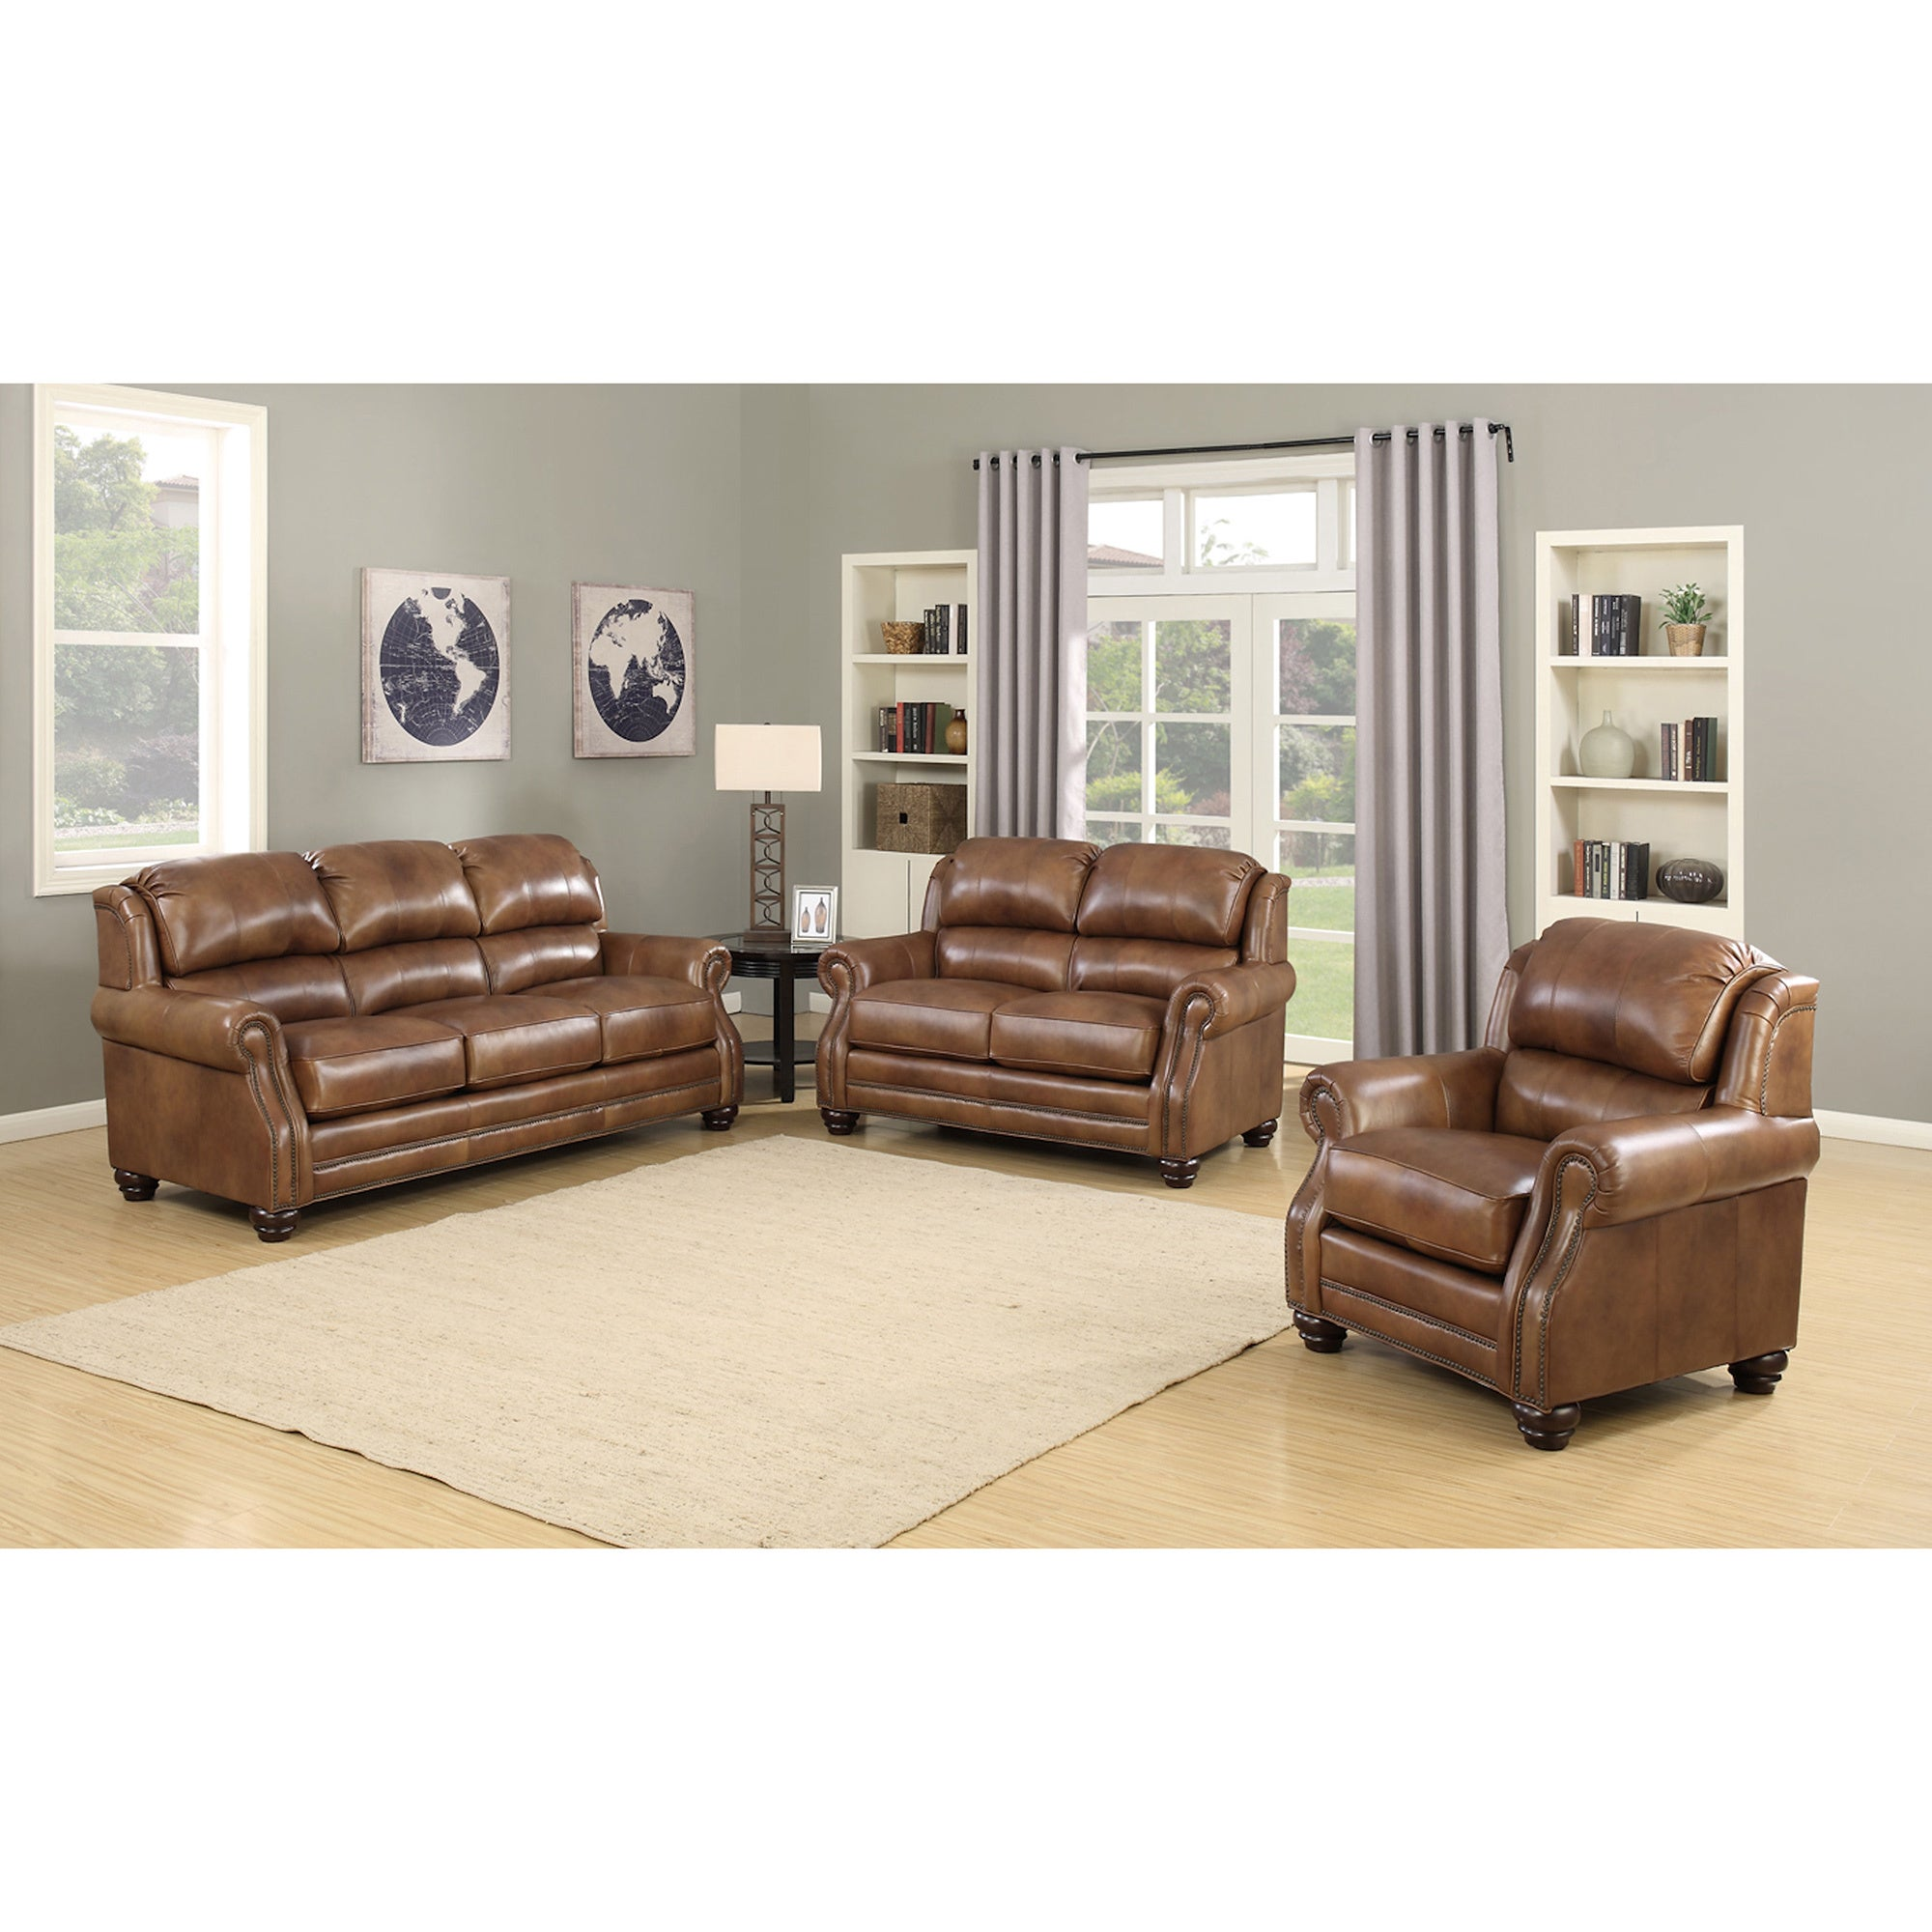 chisolm charlton loveseat reviews chair home and wayfair pdx furniture